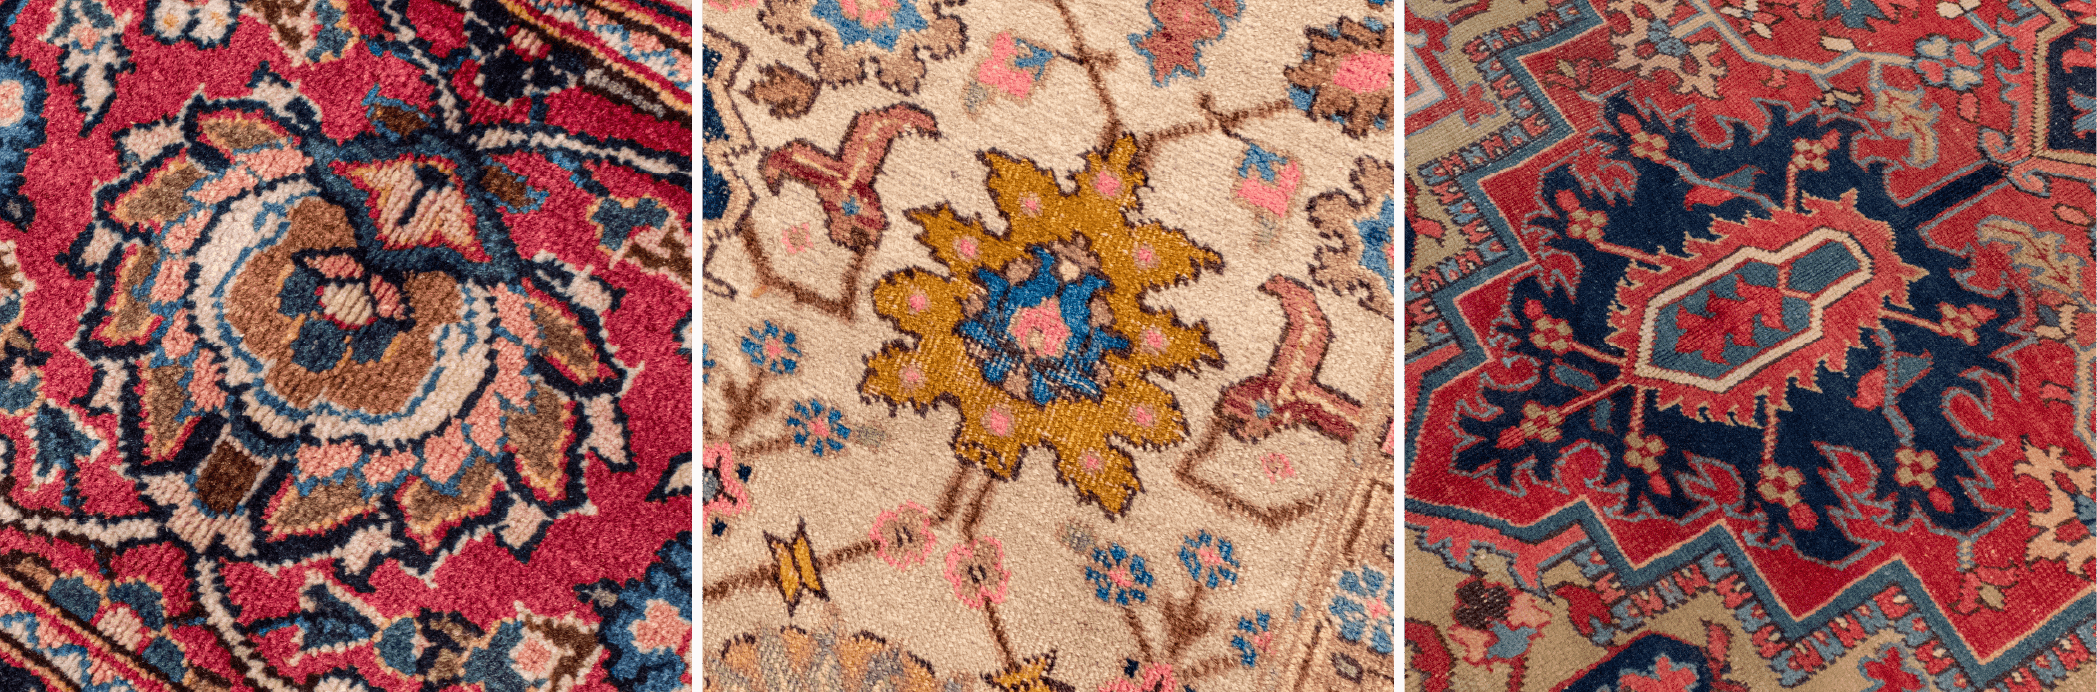 Persian Tabriz and Heriz examples of palmettes in rug design